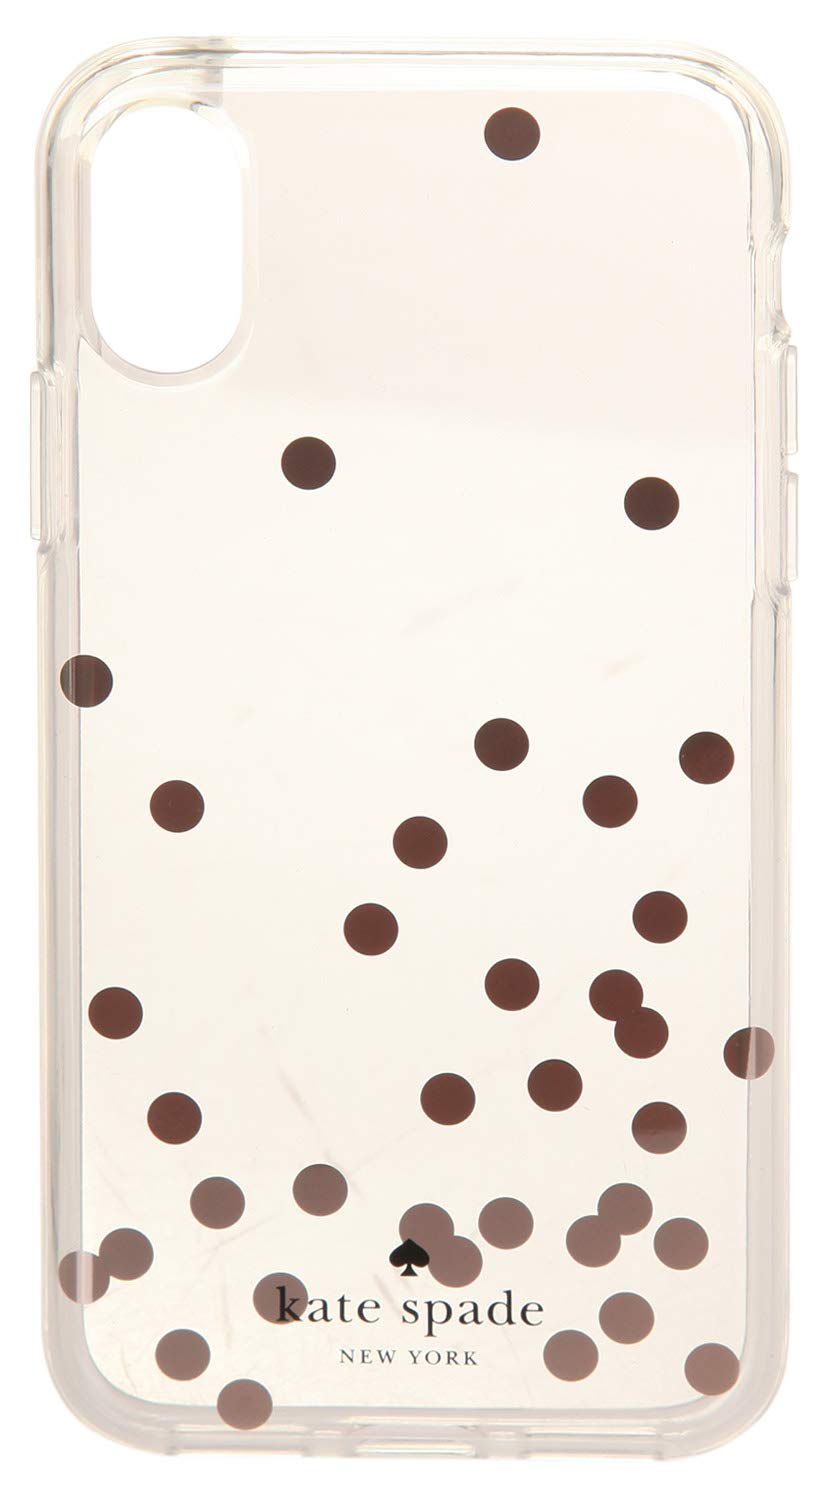 Kate Spade New York Women's Confetti Rose Gold Foil Phone Case for iPhone X Clear Multi One Size